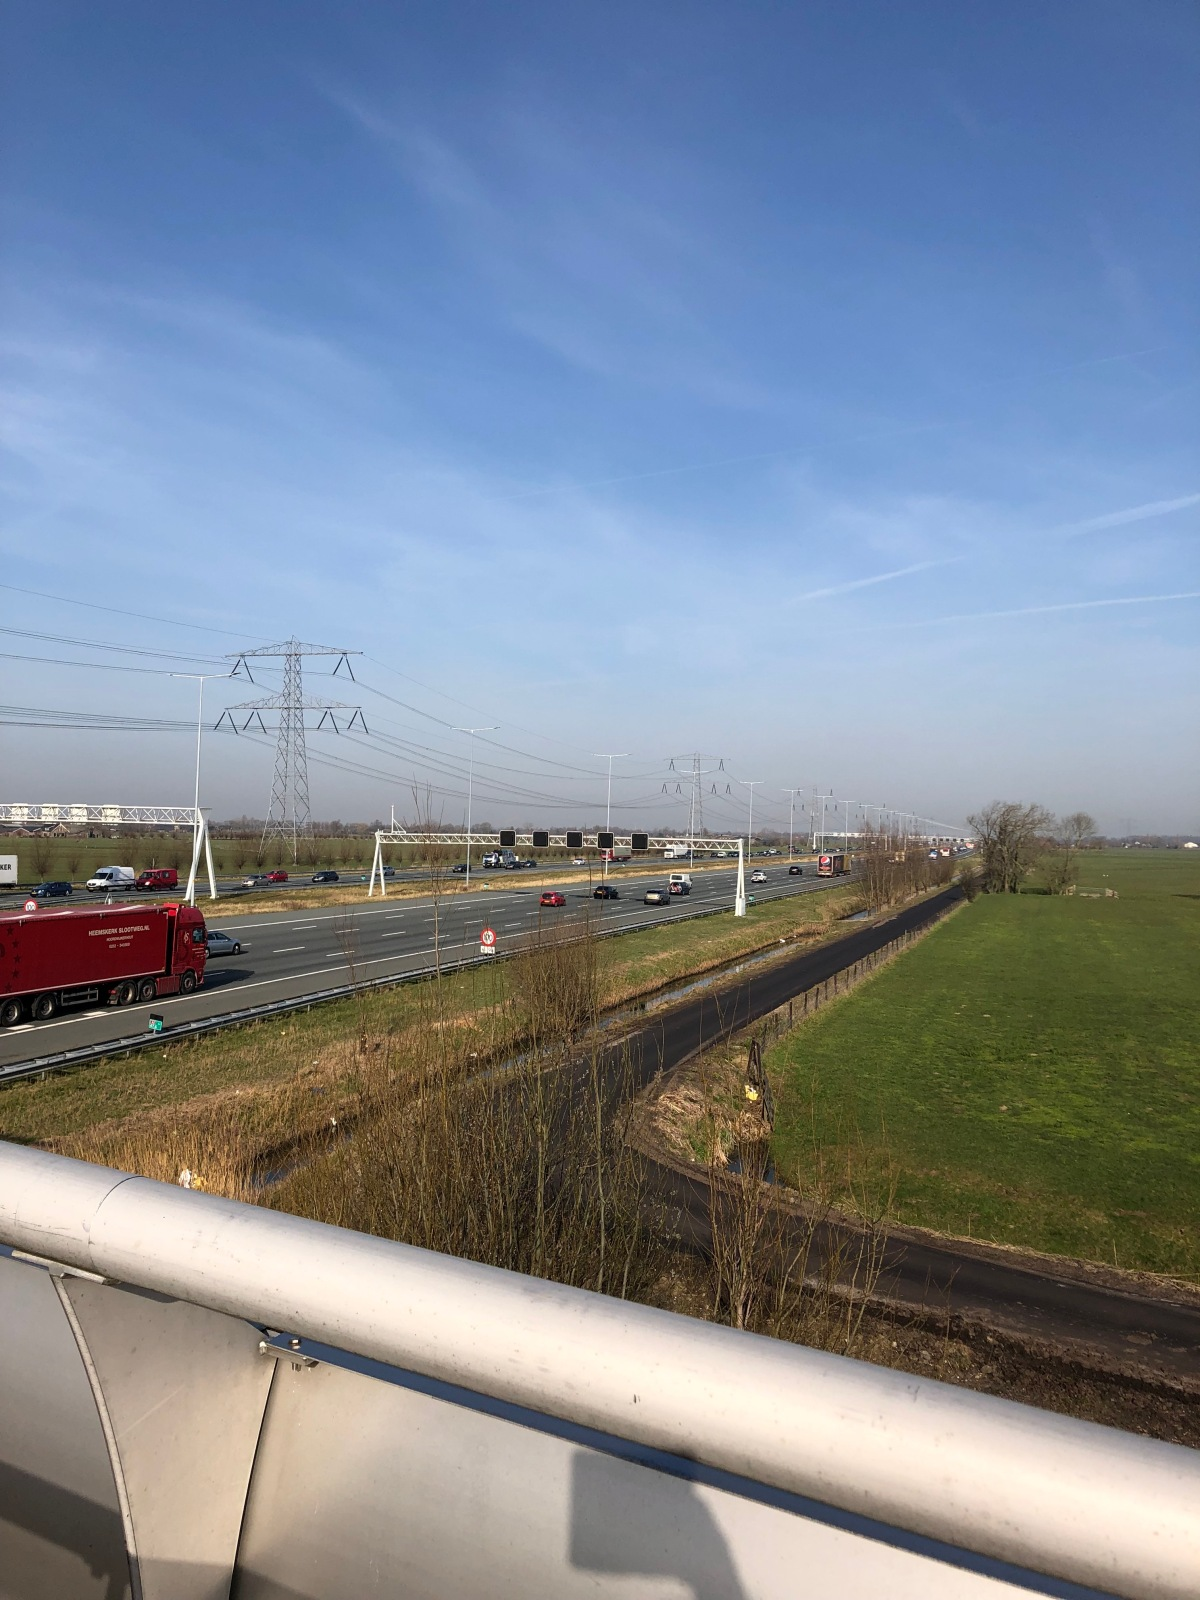 Looking over the 10 lane A2 highway.